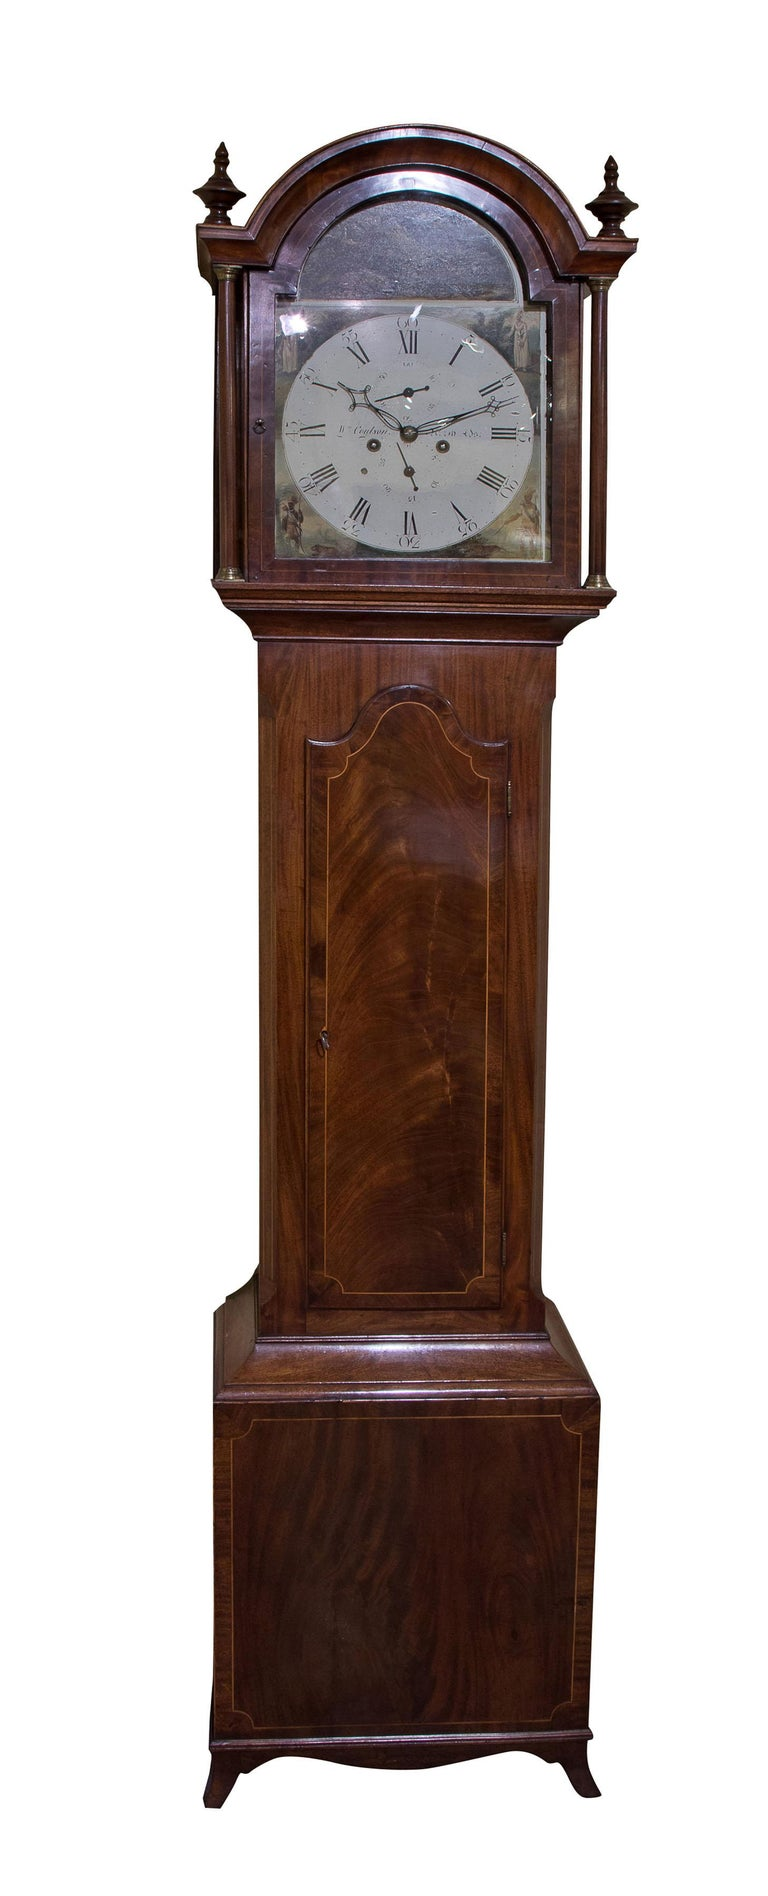 Late Georgian mahogany longcase clock, the painted dial signed WM Coulson of North Shields, with spandrels emblematic of the four continents below an arch painted with wild boar. A finely figured case, crossbanded and string inlay with 8 day